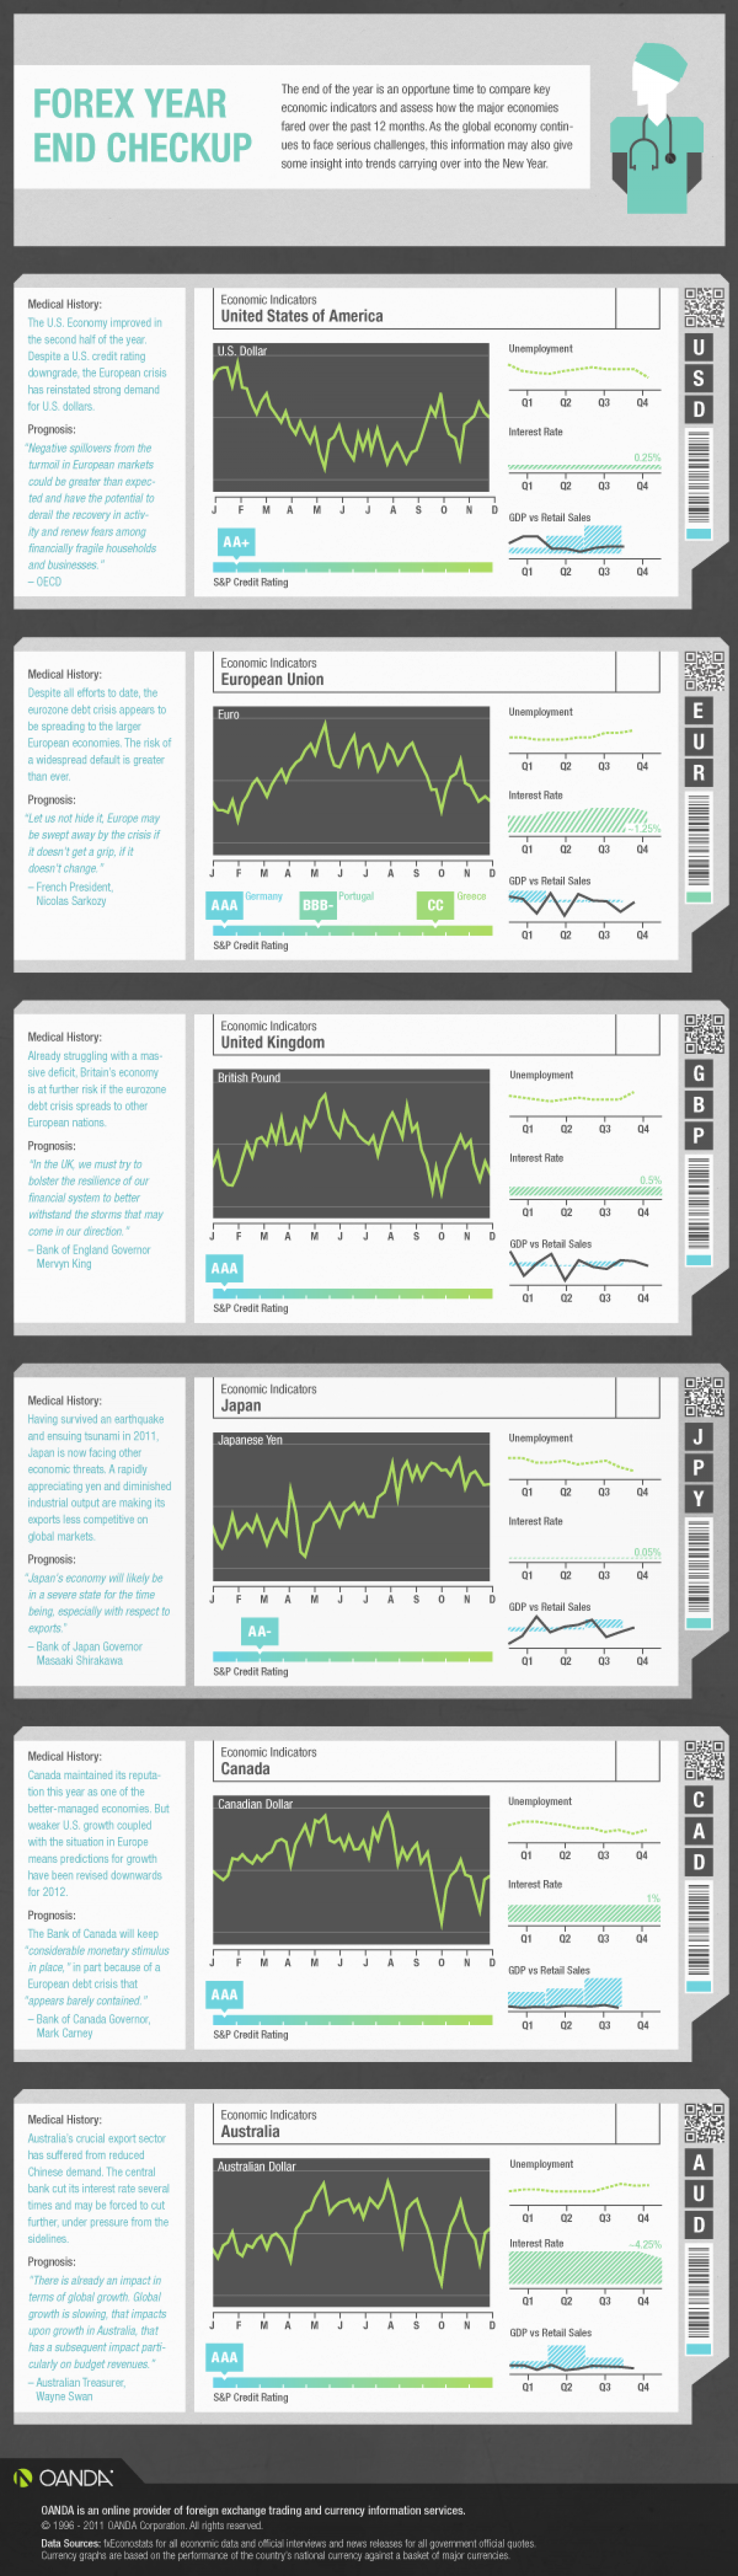 Forex Year End Checkup Infographic